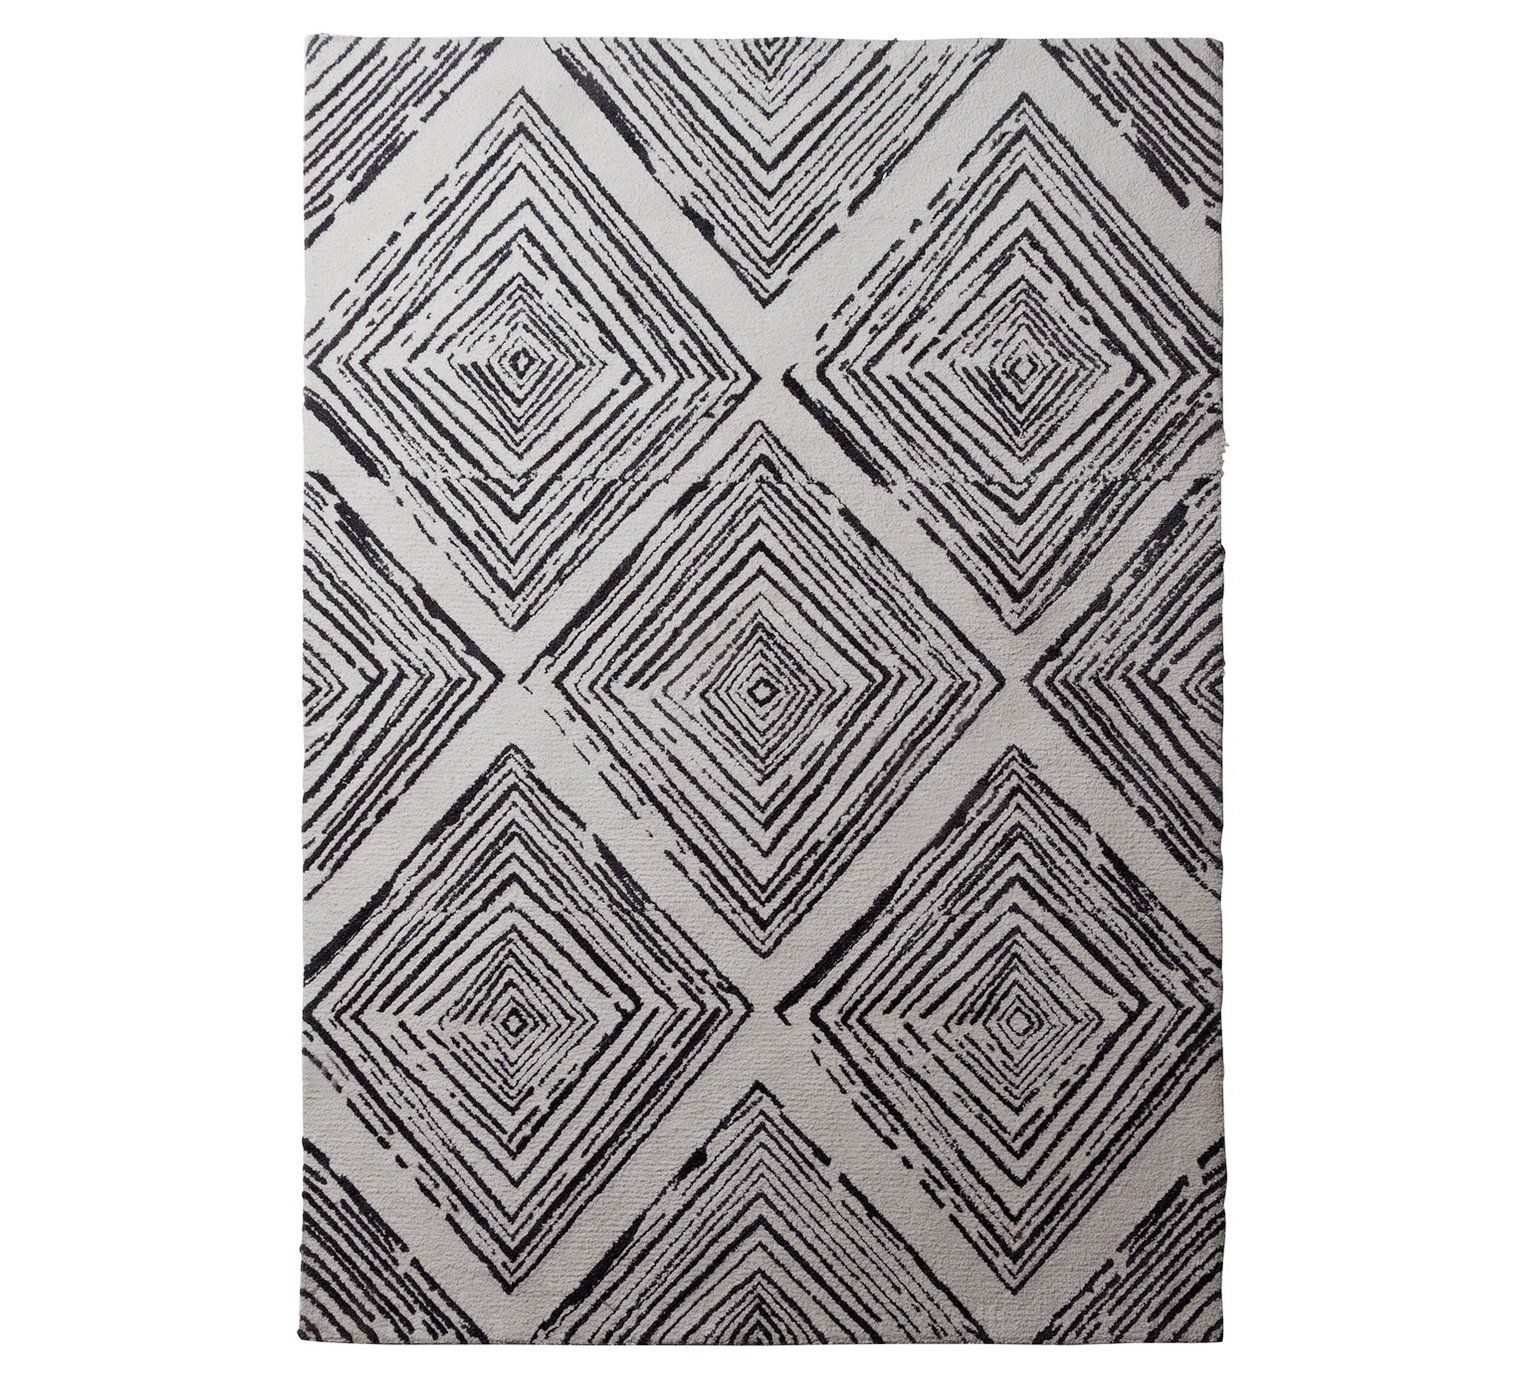 Collection Distressed Diamond Shaggy Rug 230x160cm At Argos Co Uk Visit